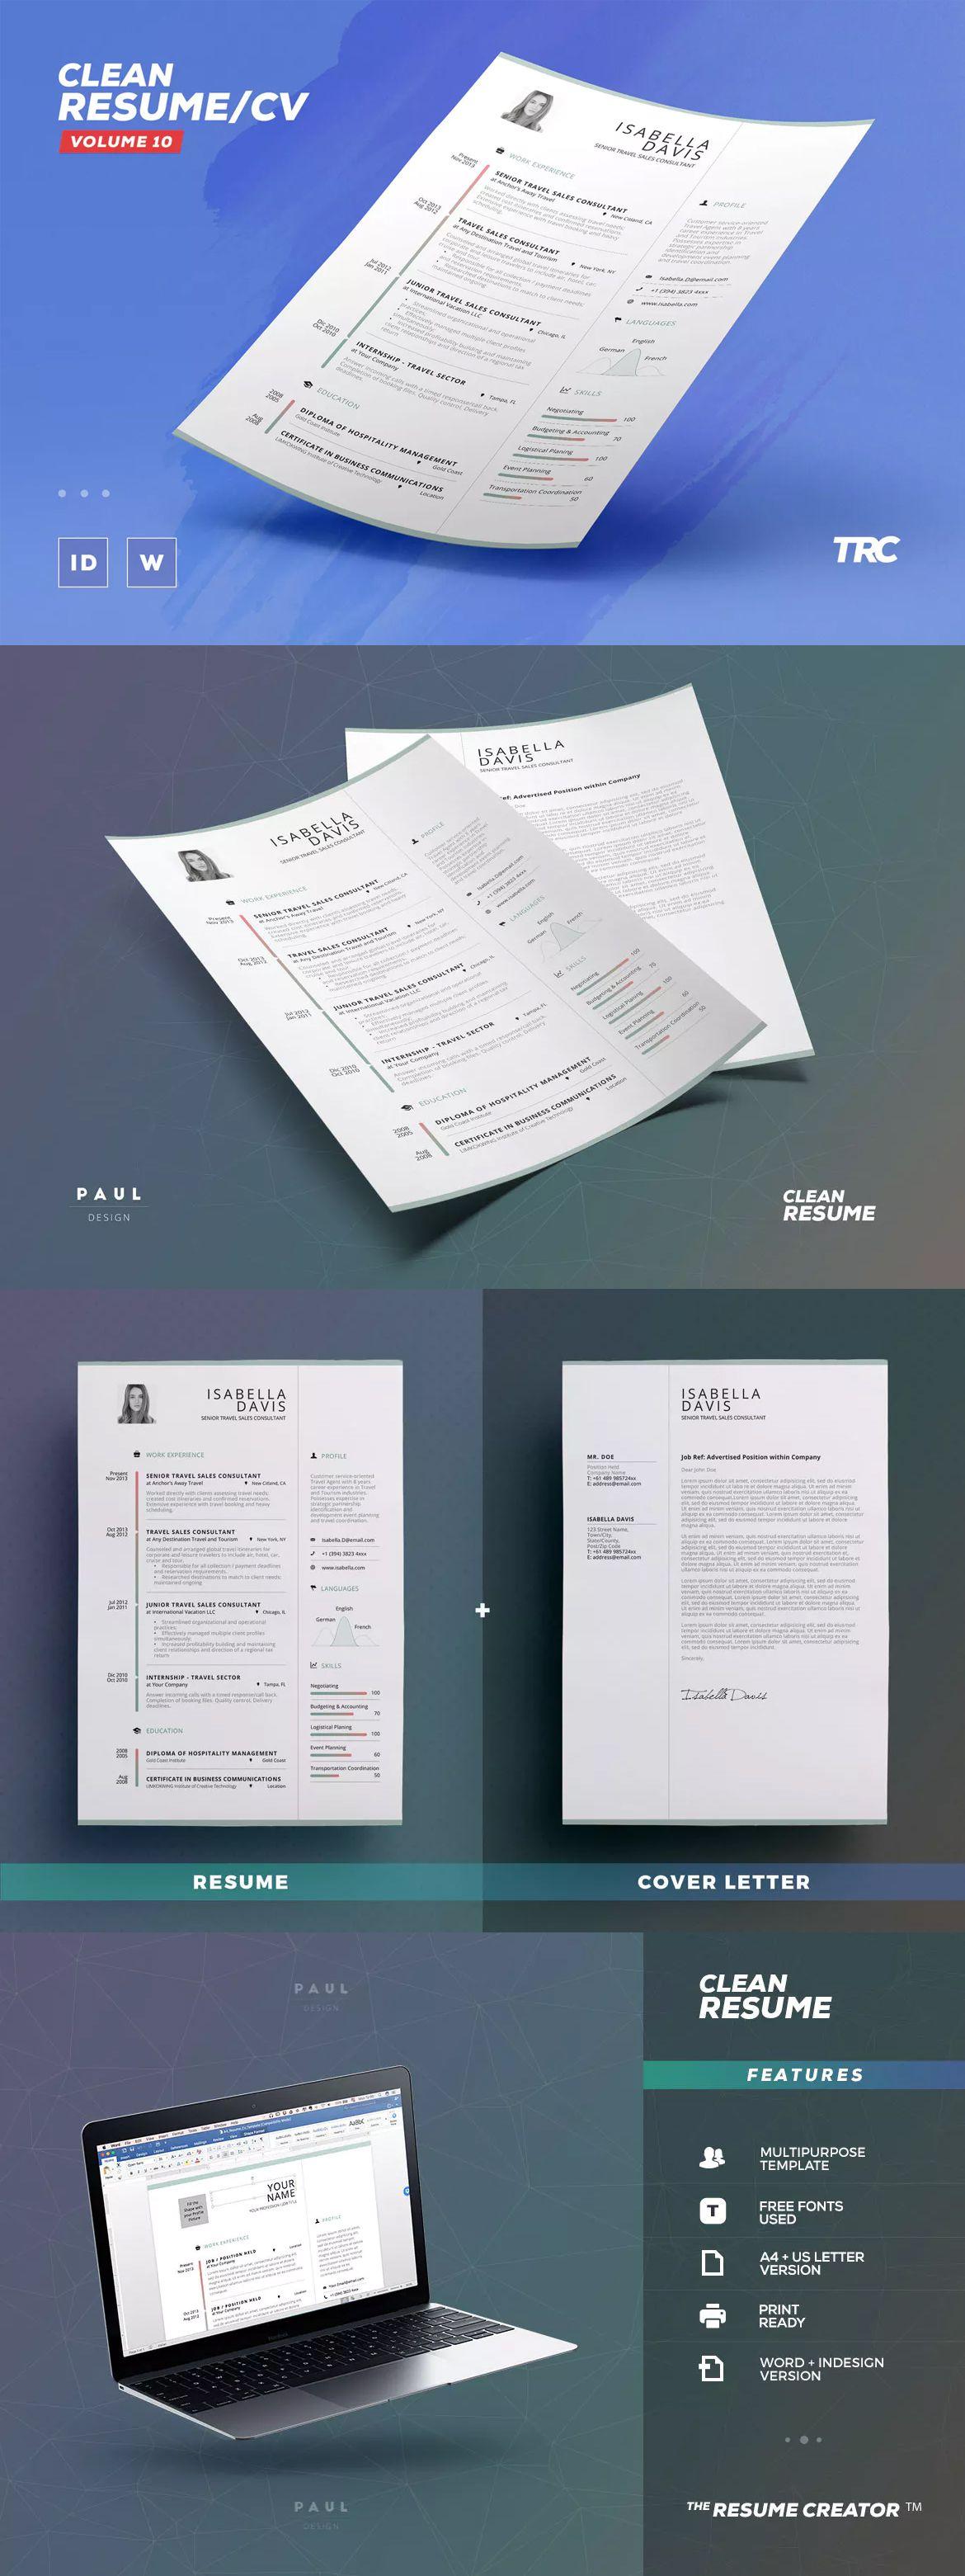 Resume Text Size Clean Resume  Cv Template Indesign Indd  A4 And Us Letter Size .